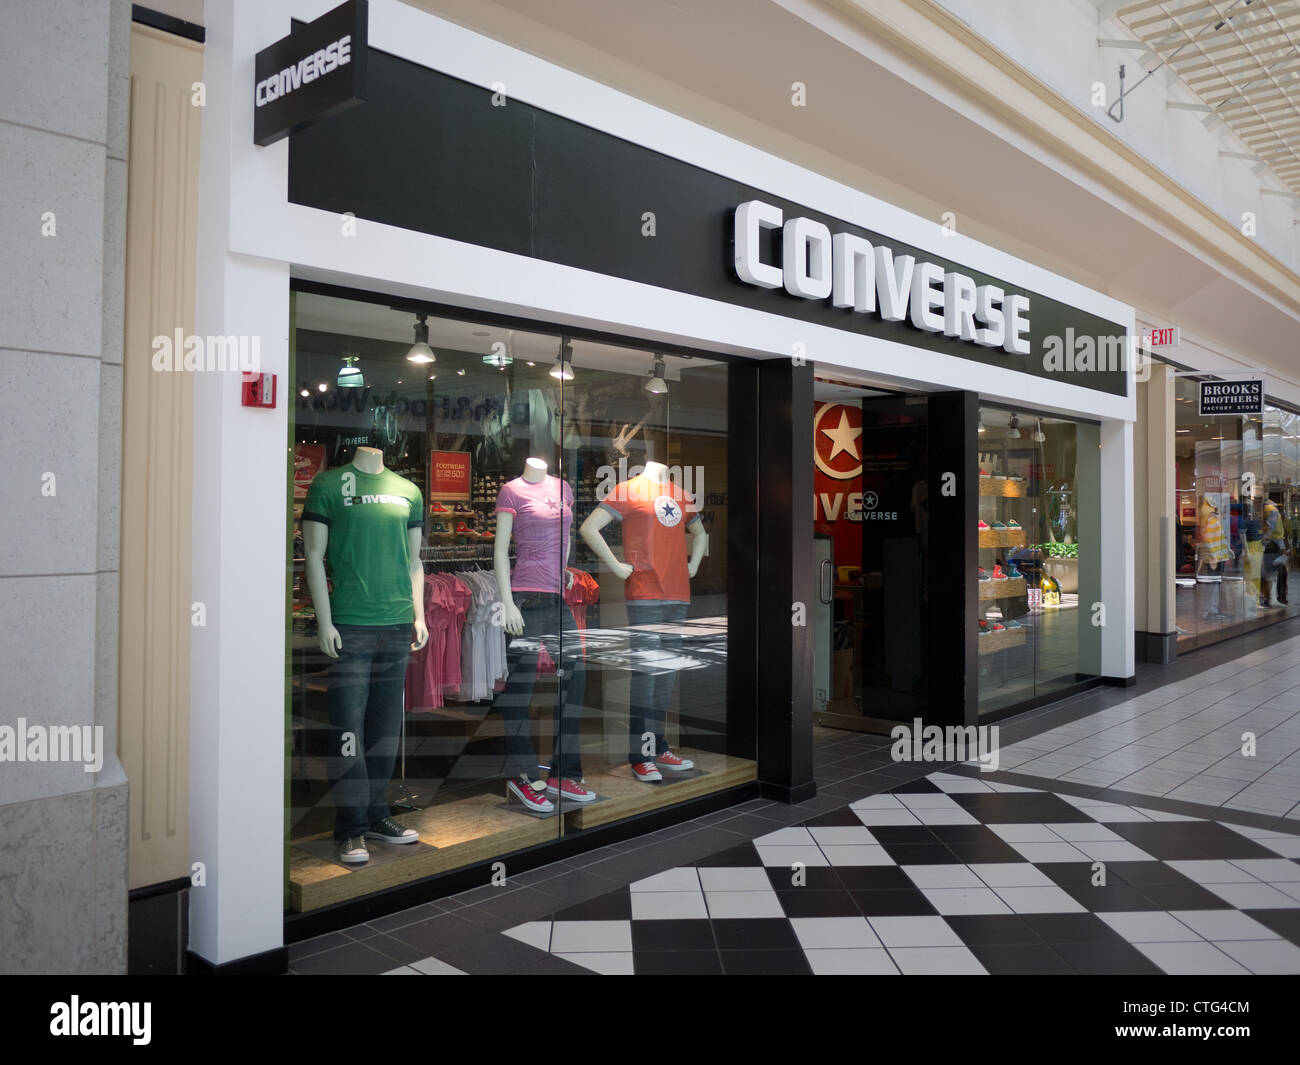 1b8b2367ea49 Converse Store Stock Photos   Converse Store Stock Images - Alamy